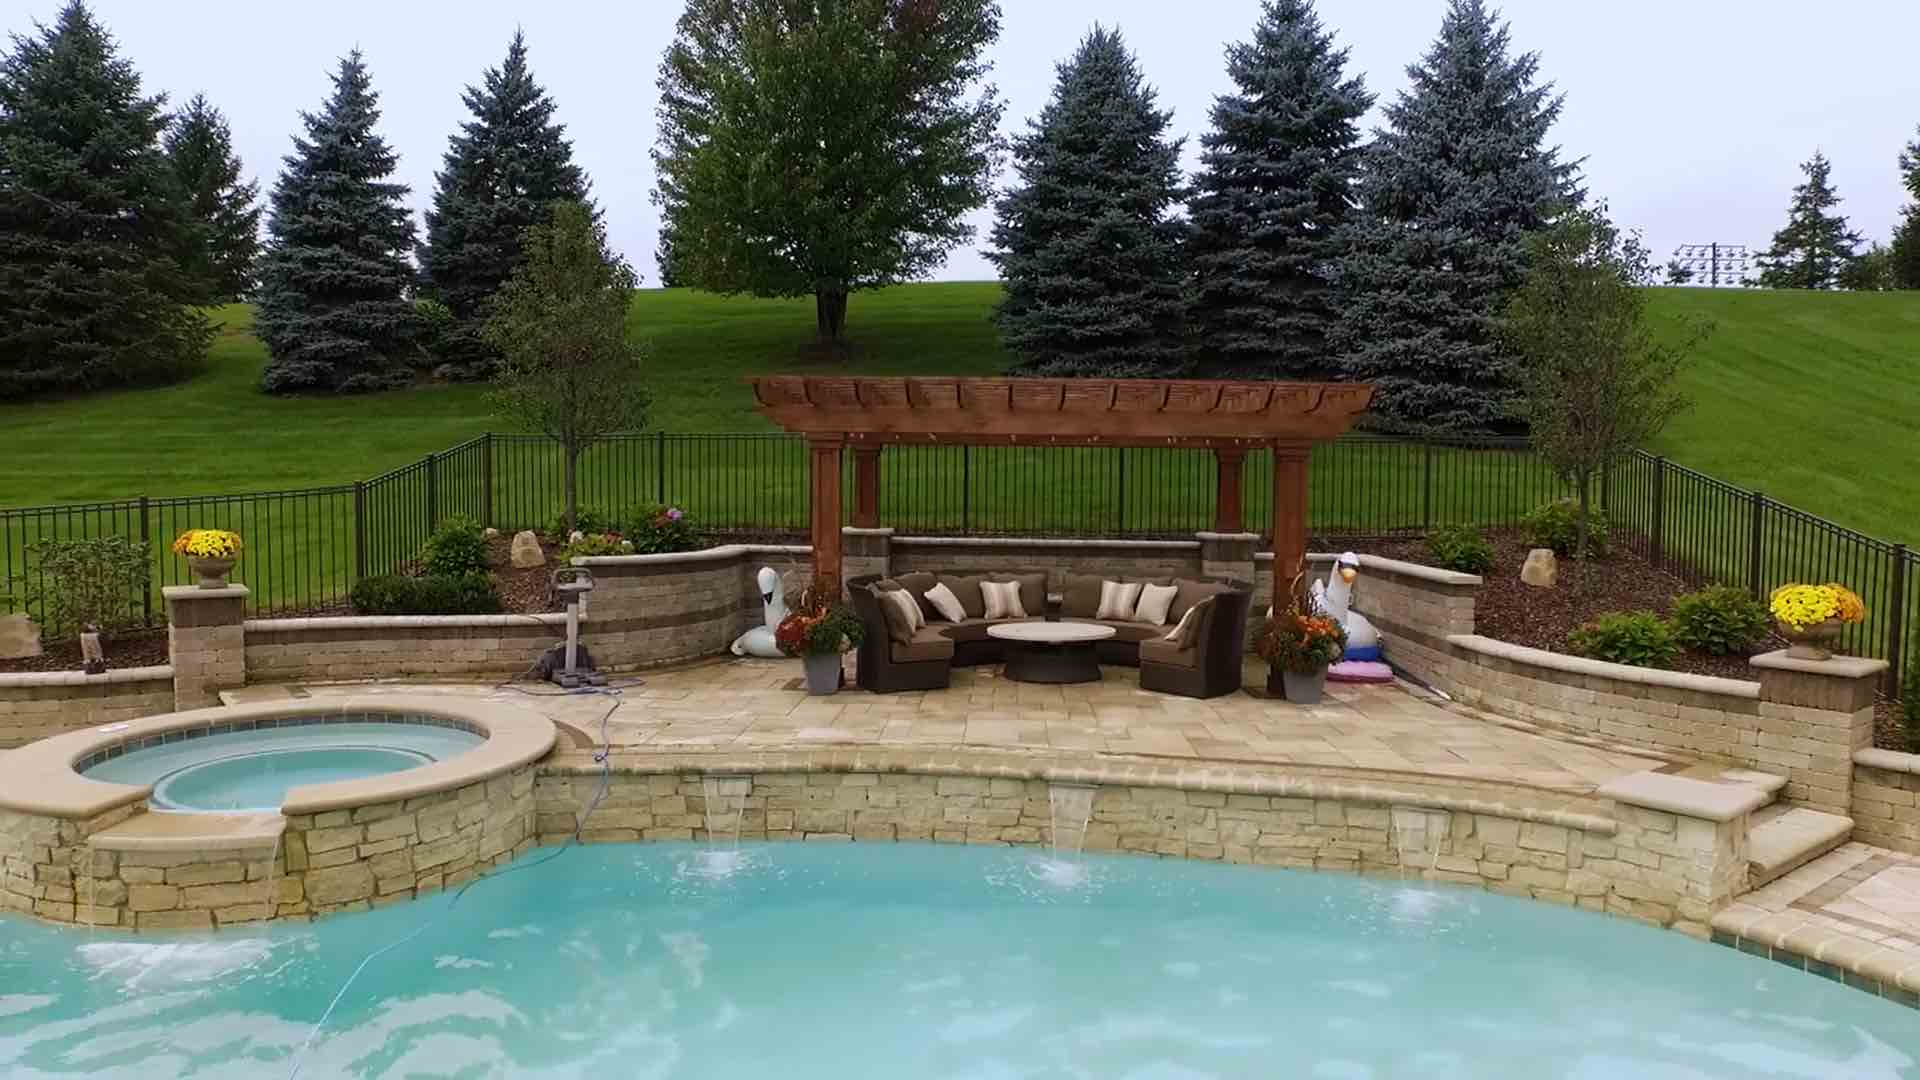 poolside seating and spillover spa connecting into pool